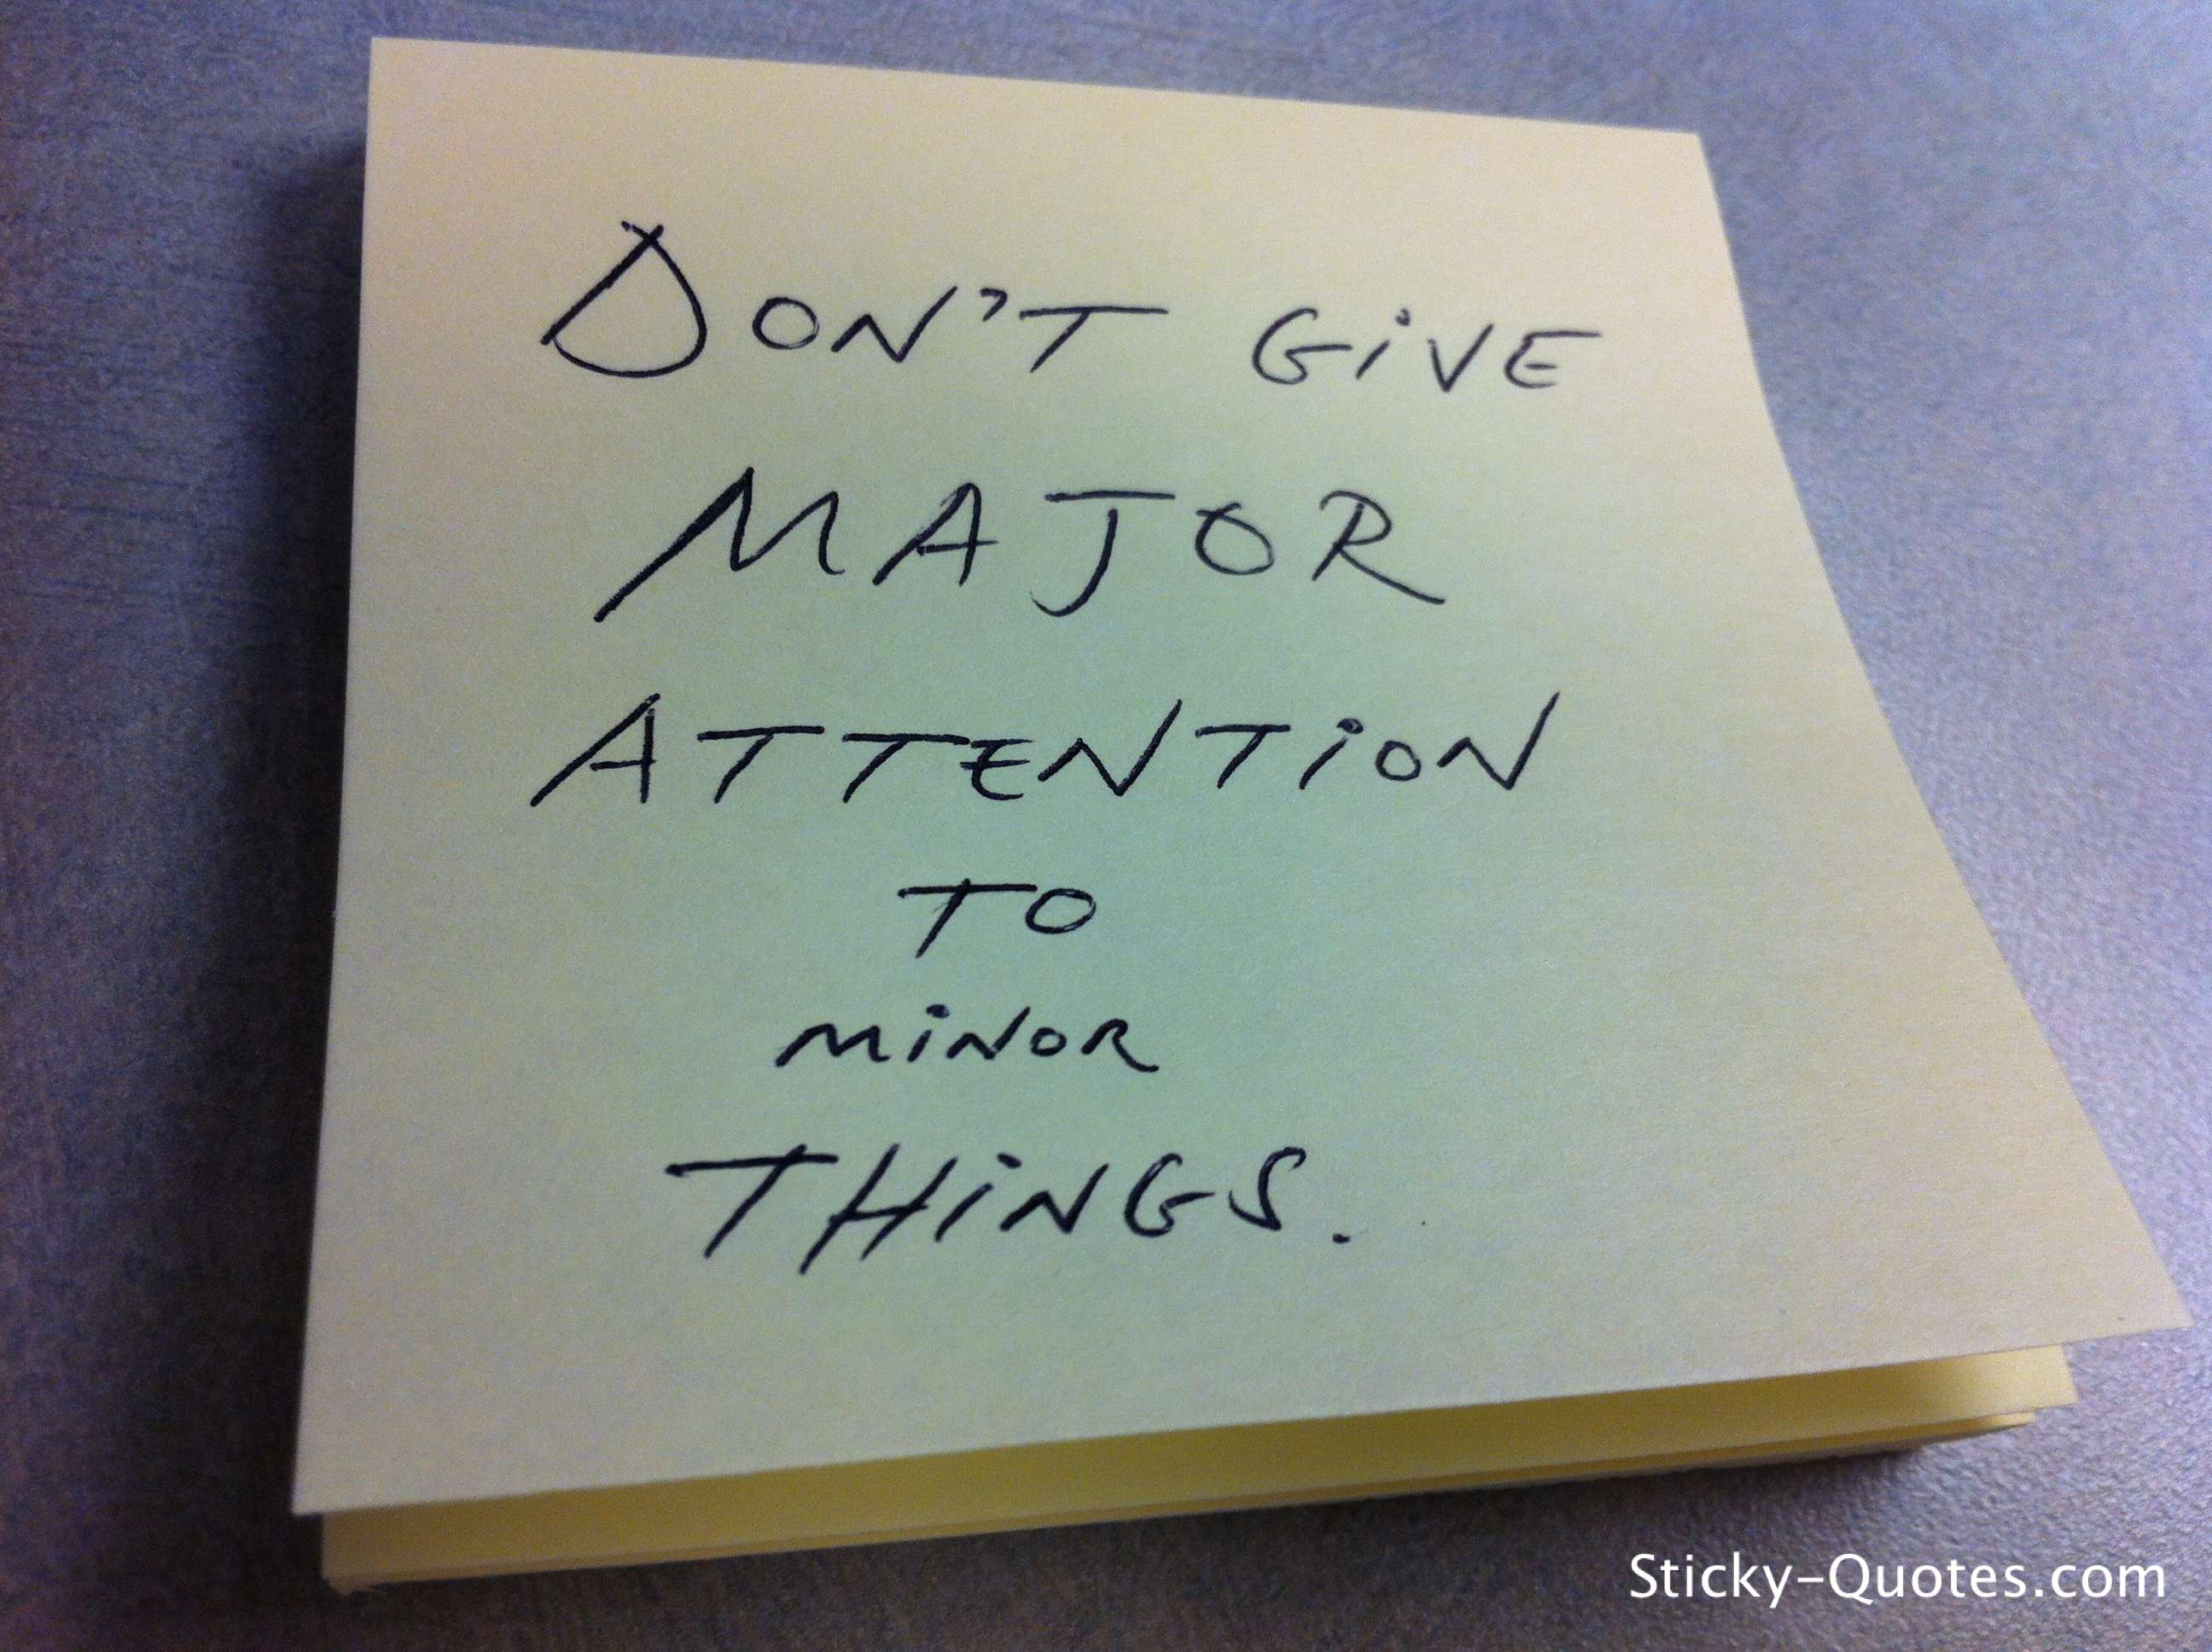 Don't Give Major Attention To Minor Things.